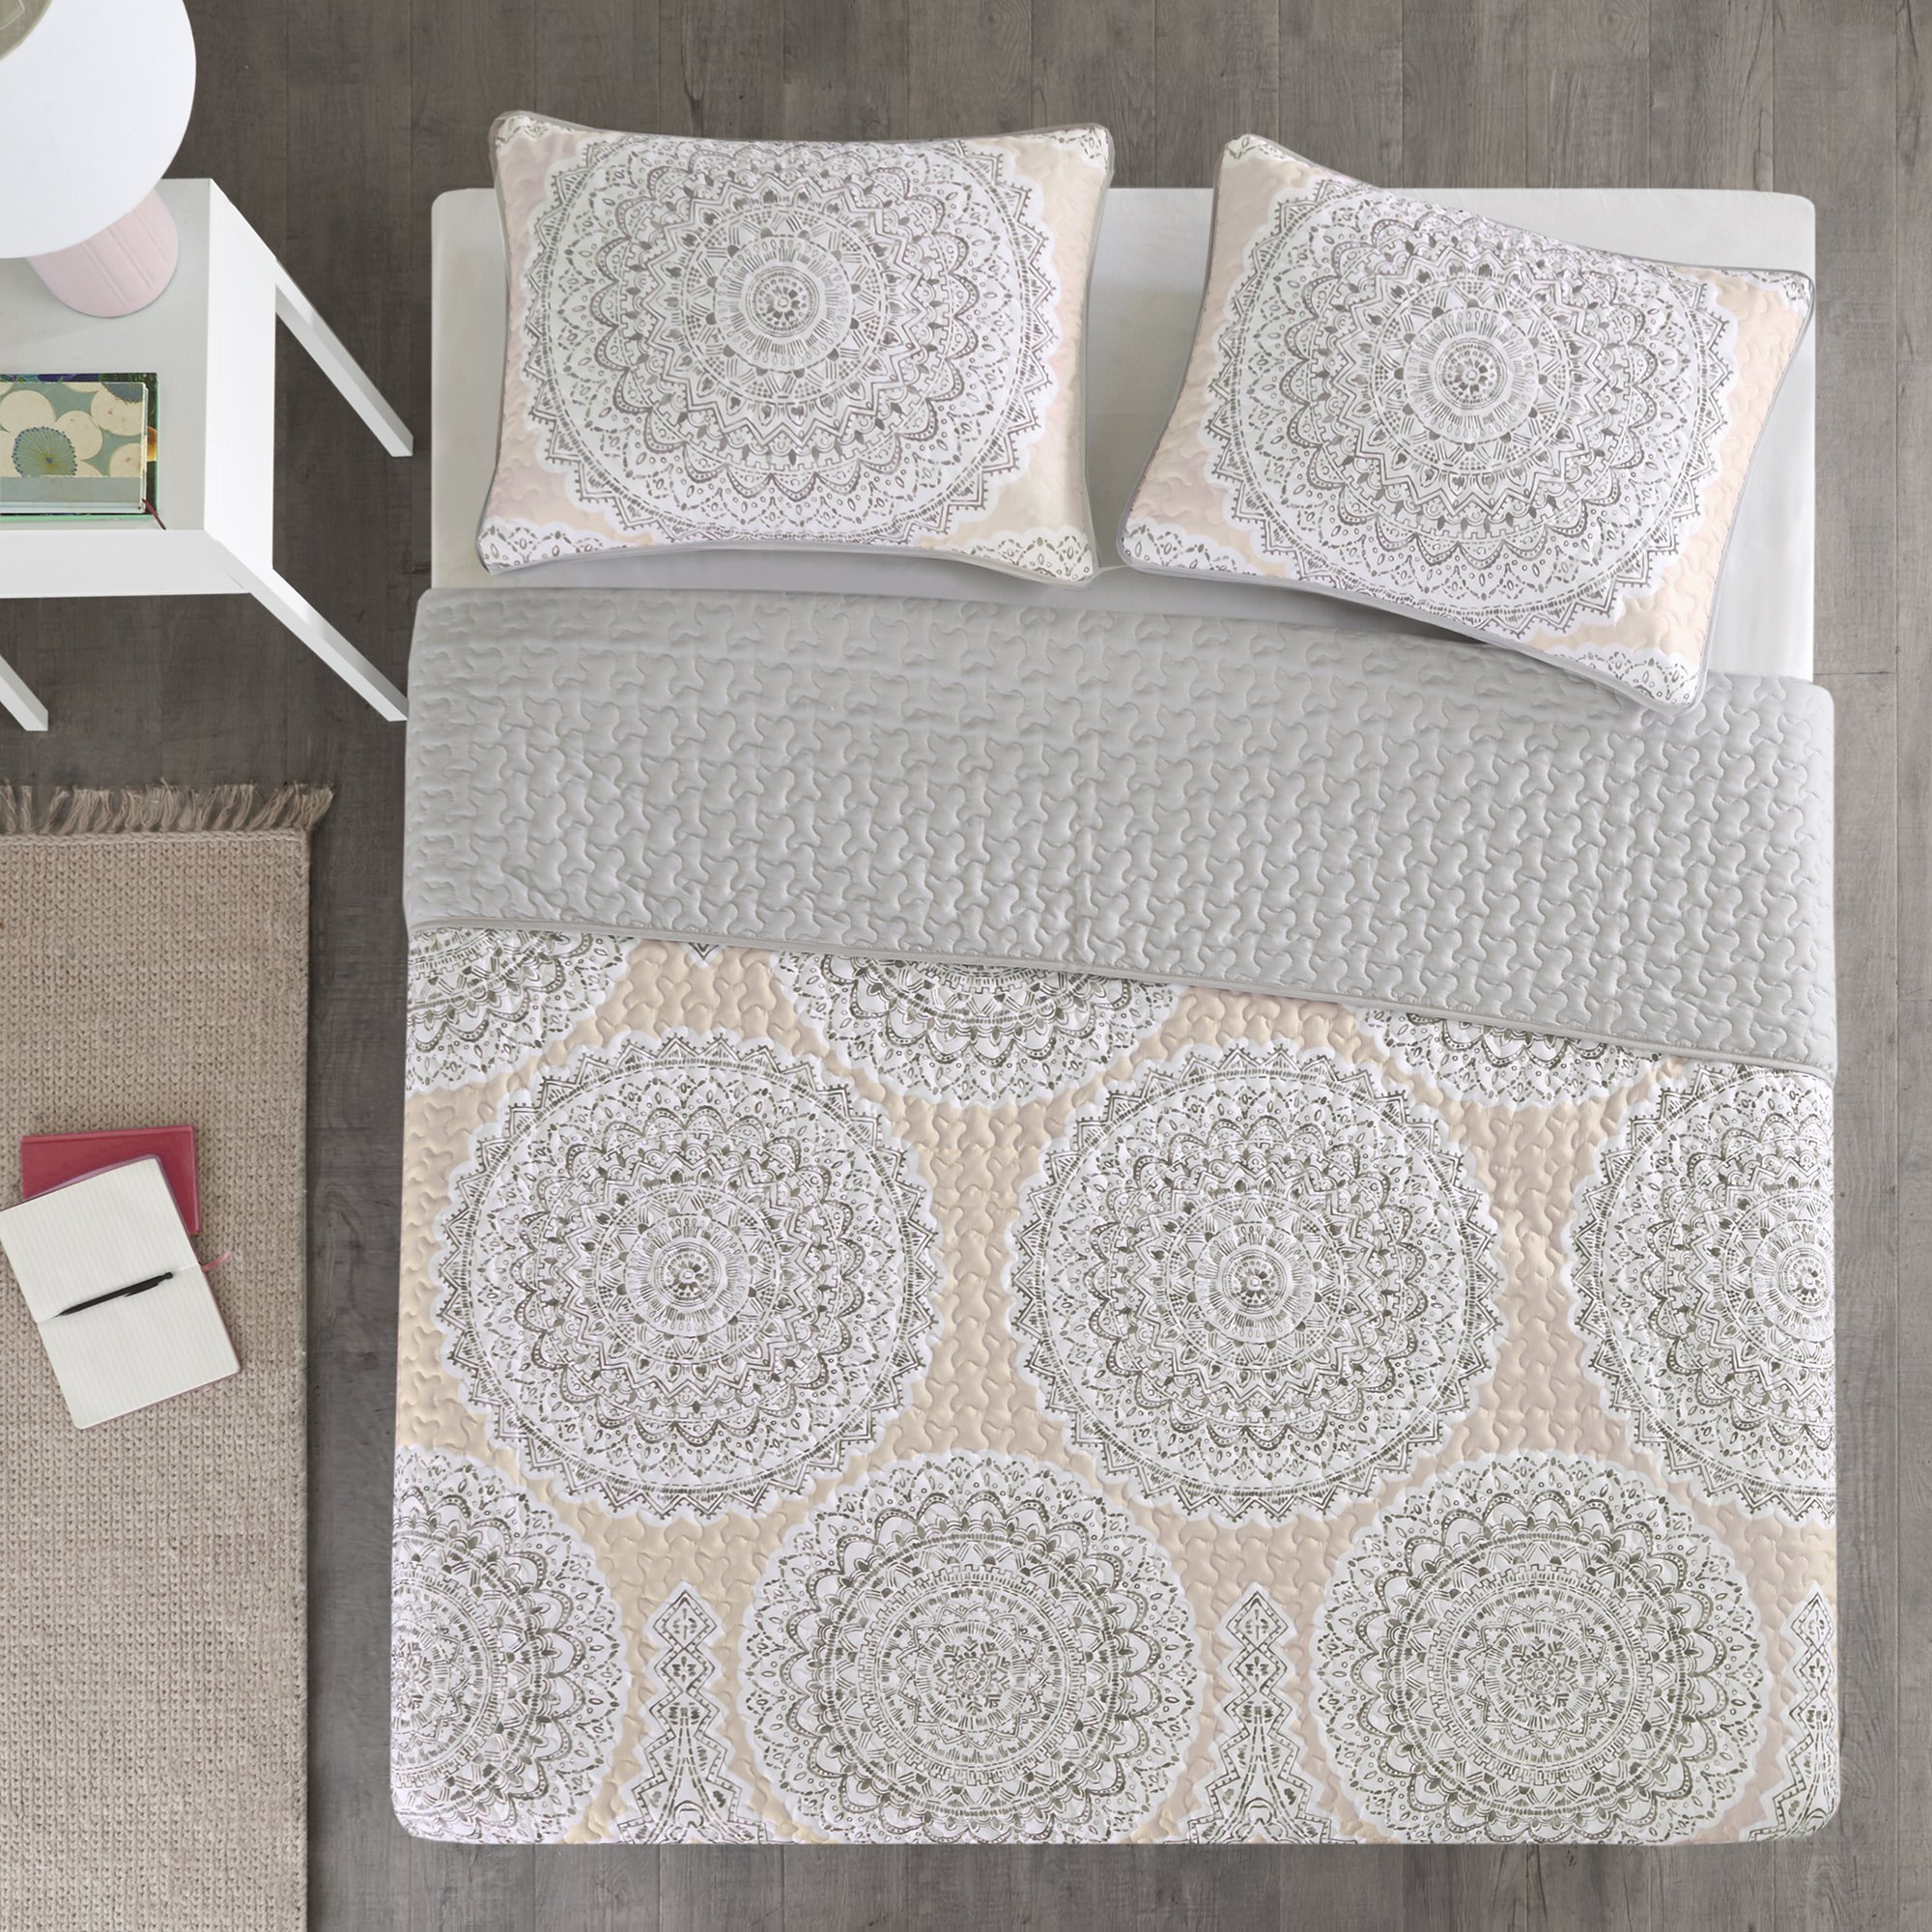 Bedding Sets Twin & Twin Xl - Quilt/Coverlet Set - 2 Pieces - Blush/Pink/Grey - Printed Medallions - Lightweight Twin Size Bedding Sets For Girls - Bedspread Fits Twin & Twin Xl - Adele by Comfort Spaces (Image #6)